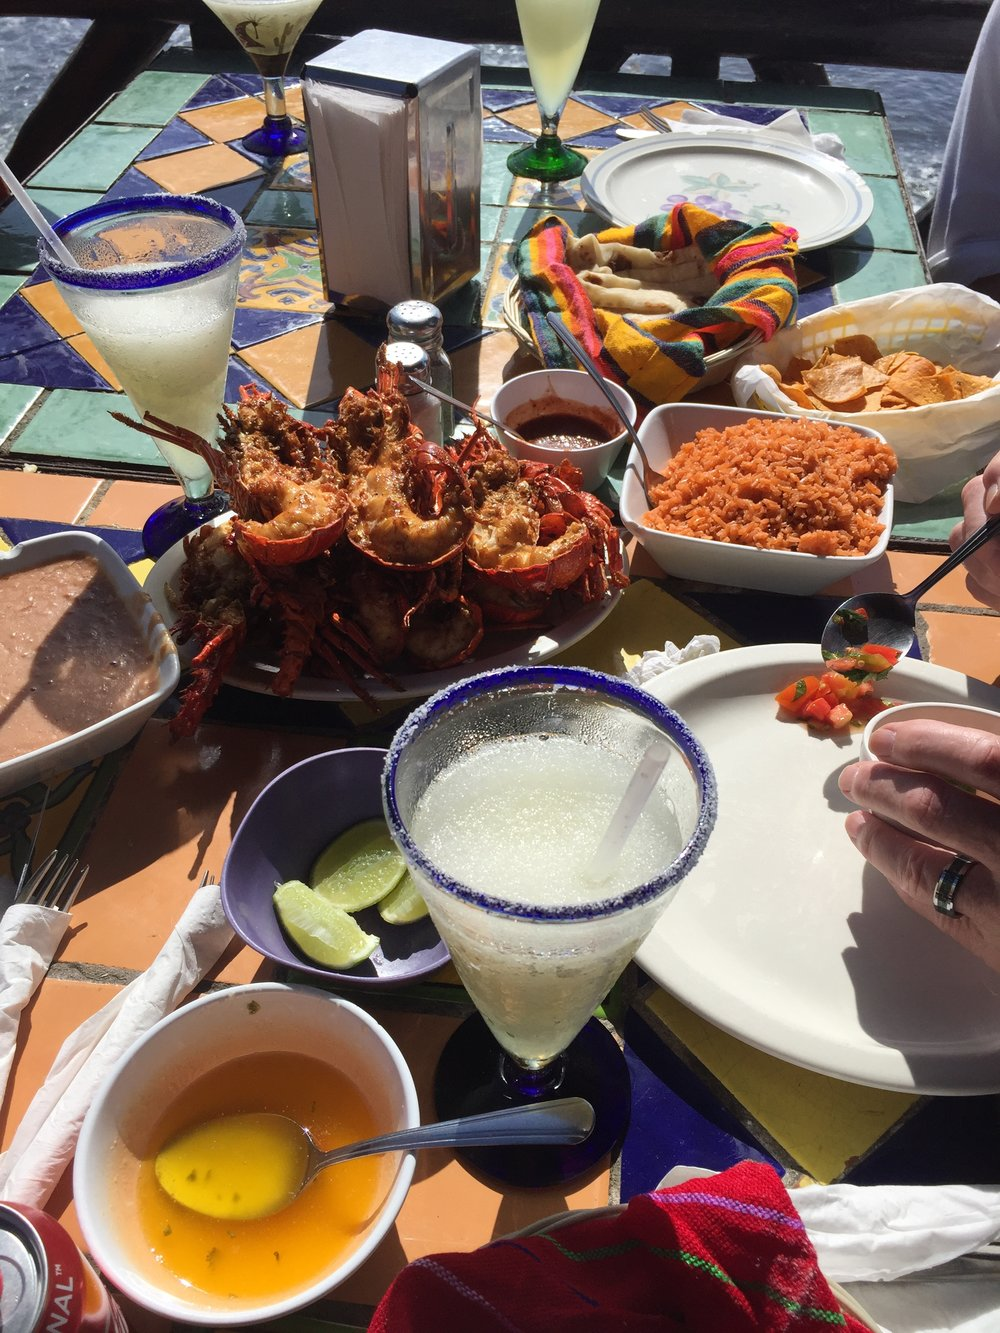 Can't forget to order margaritas with your lobster feast!